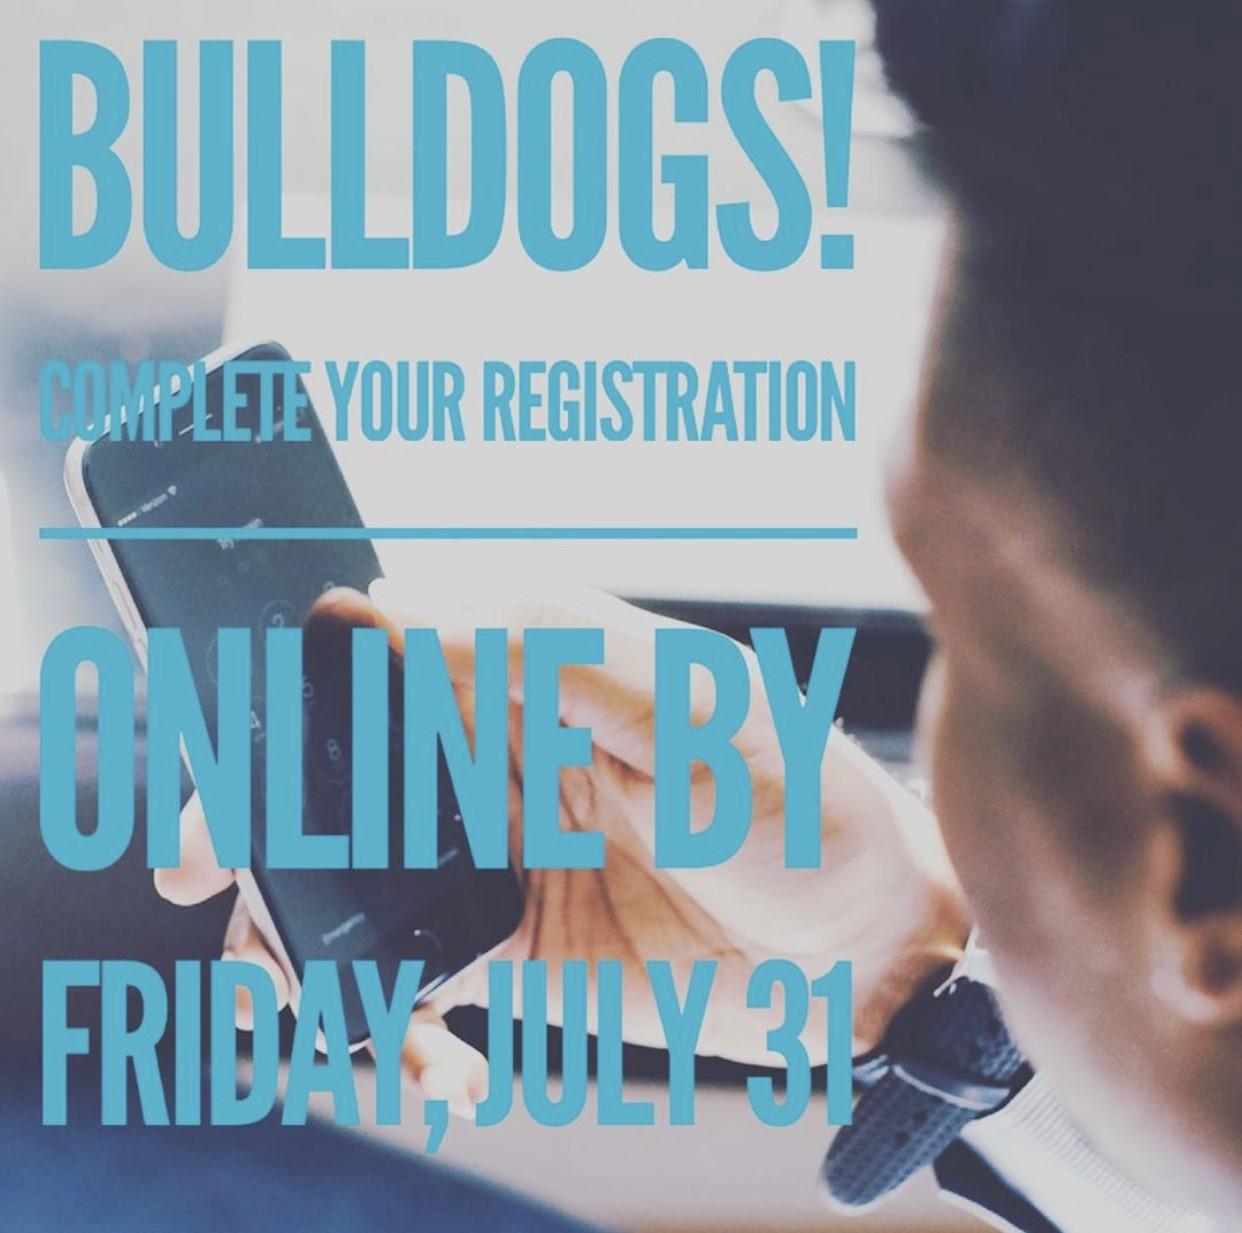 Bulldogs who have not, need to complete your online registration by July 31st!